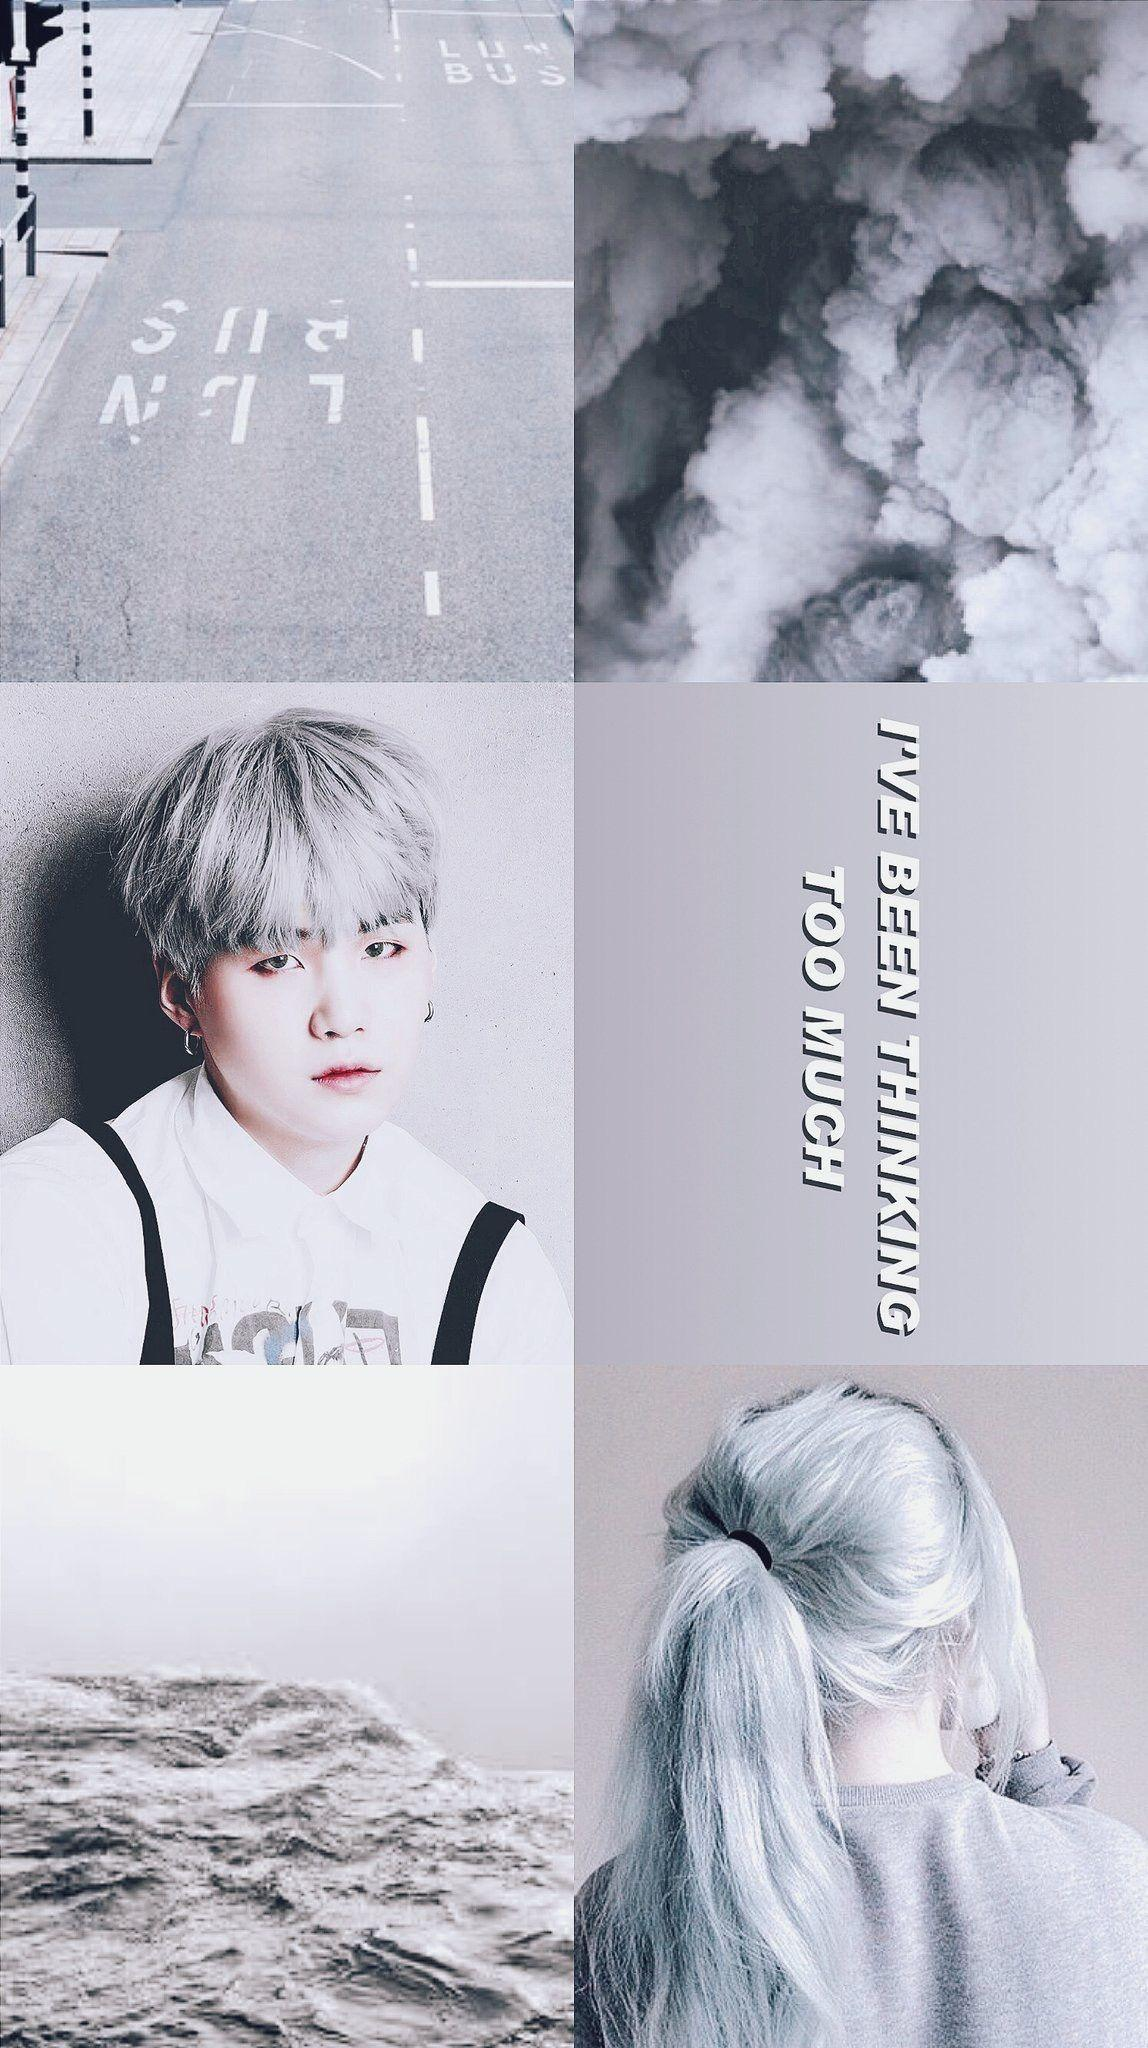 Bts Aesthetic Suga Wallpapers Top Free Bts Aesthetic Suga Backgrounds Wallpaperaccess